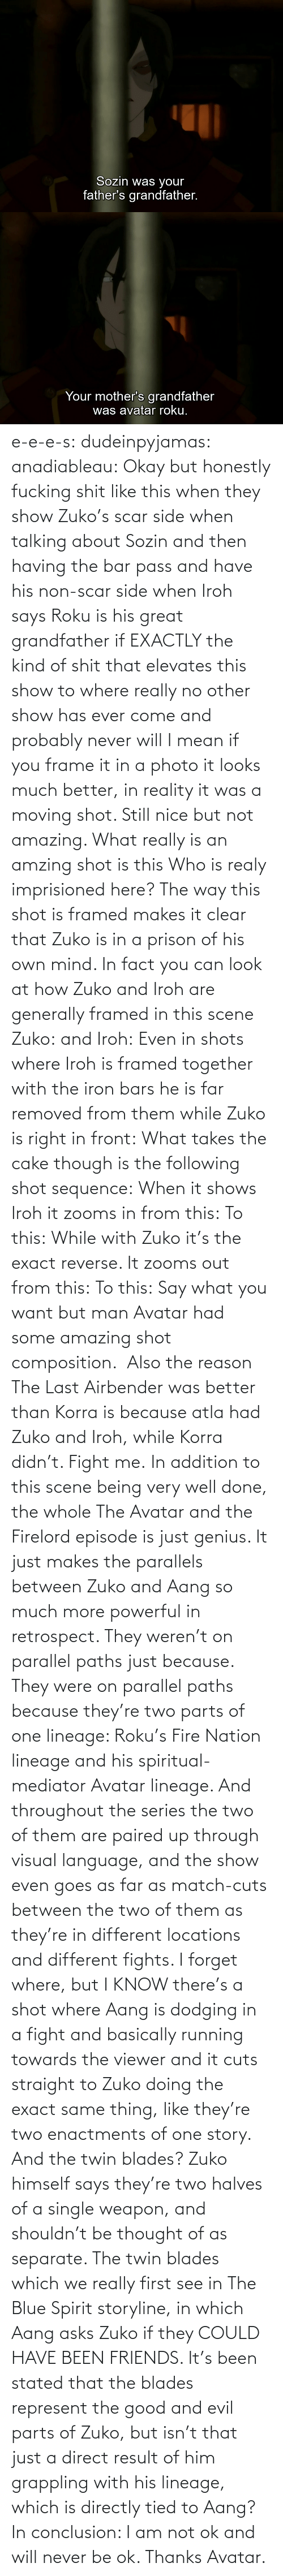 Single: e-e-e-s: dudeinpyjamas:   anadiableau: Okay but honestly fucking shit like this when they show Zuko's scar side when talking about Sozin and then having the bar pass and have his non-scar side when Iroh says Roku is his great grandfather if EXACTLY the kind of shit that elevates this show to where really no other show has ever come and probably never will I mean if you frame it in a photo it looks much better, in reality it was a moving shot. Still nice but not amazing. What really is an amzing shot is this Who is realy imprisioned here? The way this shot is framed makes it clear that Zuko is in a prison of his own mind. In fact you can look at how Zuko and Iroh are generally framed in this scene Zuko: and Iroh: Even in shots where Iroh is framed together with the iron bars he is far removed from them while Zuko is right in front:  What takes the cake though is the following shot sequence: When it shows Iroh it zooms in from this: To this: While with Zuko it's the exact reverse. It zooms out from this: To this: Say what you want but man Avatar had some amazing shot composition.   Also the reason The Last Airbender was better than Korra is because atla had Zuko and Iroh, while Korra didn't. Fight me.    In addition to this scene being very well done, the whole The Avatar and the Firelord episode is just genius.  It just makes the parallels between Zuko and Aang so much more powerful in retrospect.  They weren't on parallel paths just because.  They were on parallel paths because they're two parts of one lineage: Roku's Fire Nation lineage and his spiritual-mediator Avatar lineage.  And throughout the series the two of them are paired up through visual language, and the show even goes as far as match-cuts between the two of them as they're in different locations and different fights.  I forget where, but I KNOW there's a shot where Aang is dodging in a fight and basically running towards the viewer and it cuts straight to Zuko doing the exact same thing, like they're two enactments of one story.   And the twin blades?  Zuko himself says they're two halves of a single weapon, and shouldn't be thought of as separate.  The twin blades which we really first see in The Blue Spirit storyline, in which Aang asks Zuko if they COULD HAVE BEEN FRIENDS.  It's been stated that the blades represent the good and evil parts of Zuko, but isn't that just a direct result of him grappling with his lineage, which is directly tied to Aang? In conclusion: I am not ok and will never be ok.  Thanks Avatar.